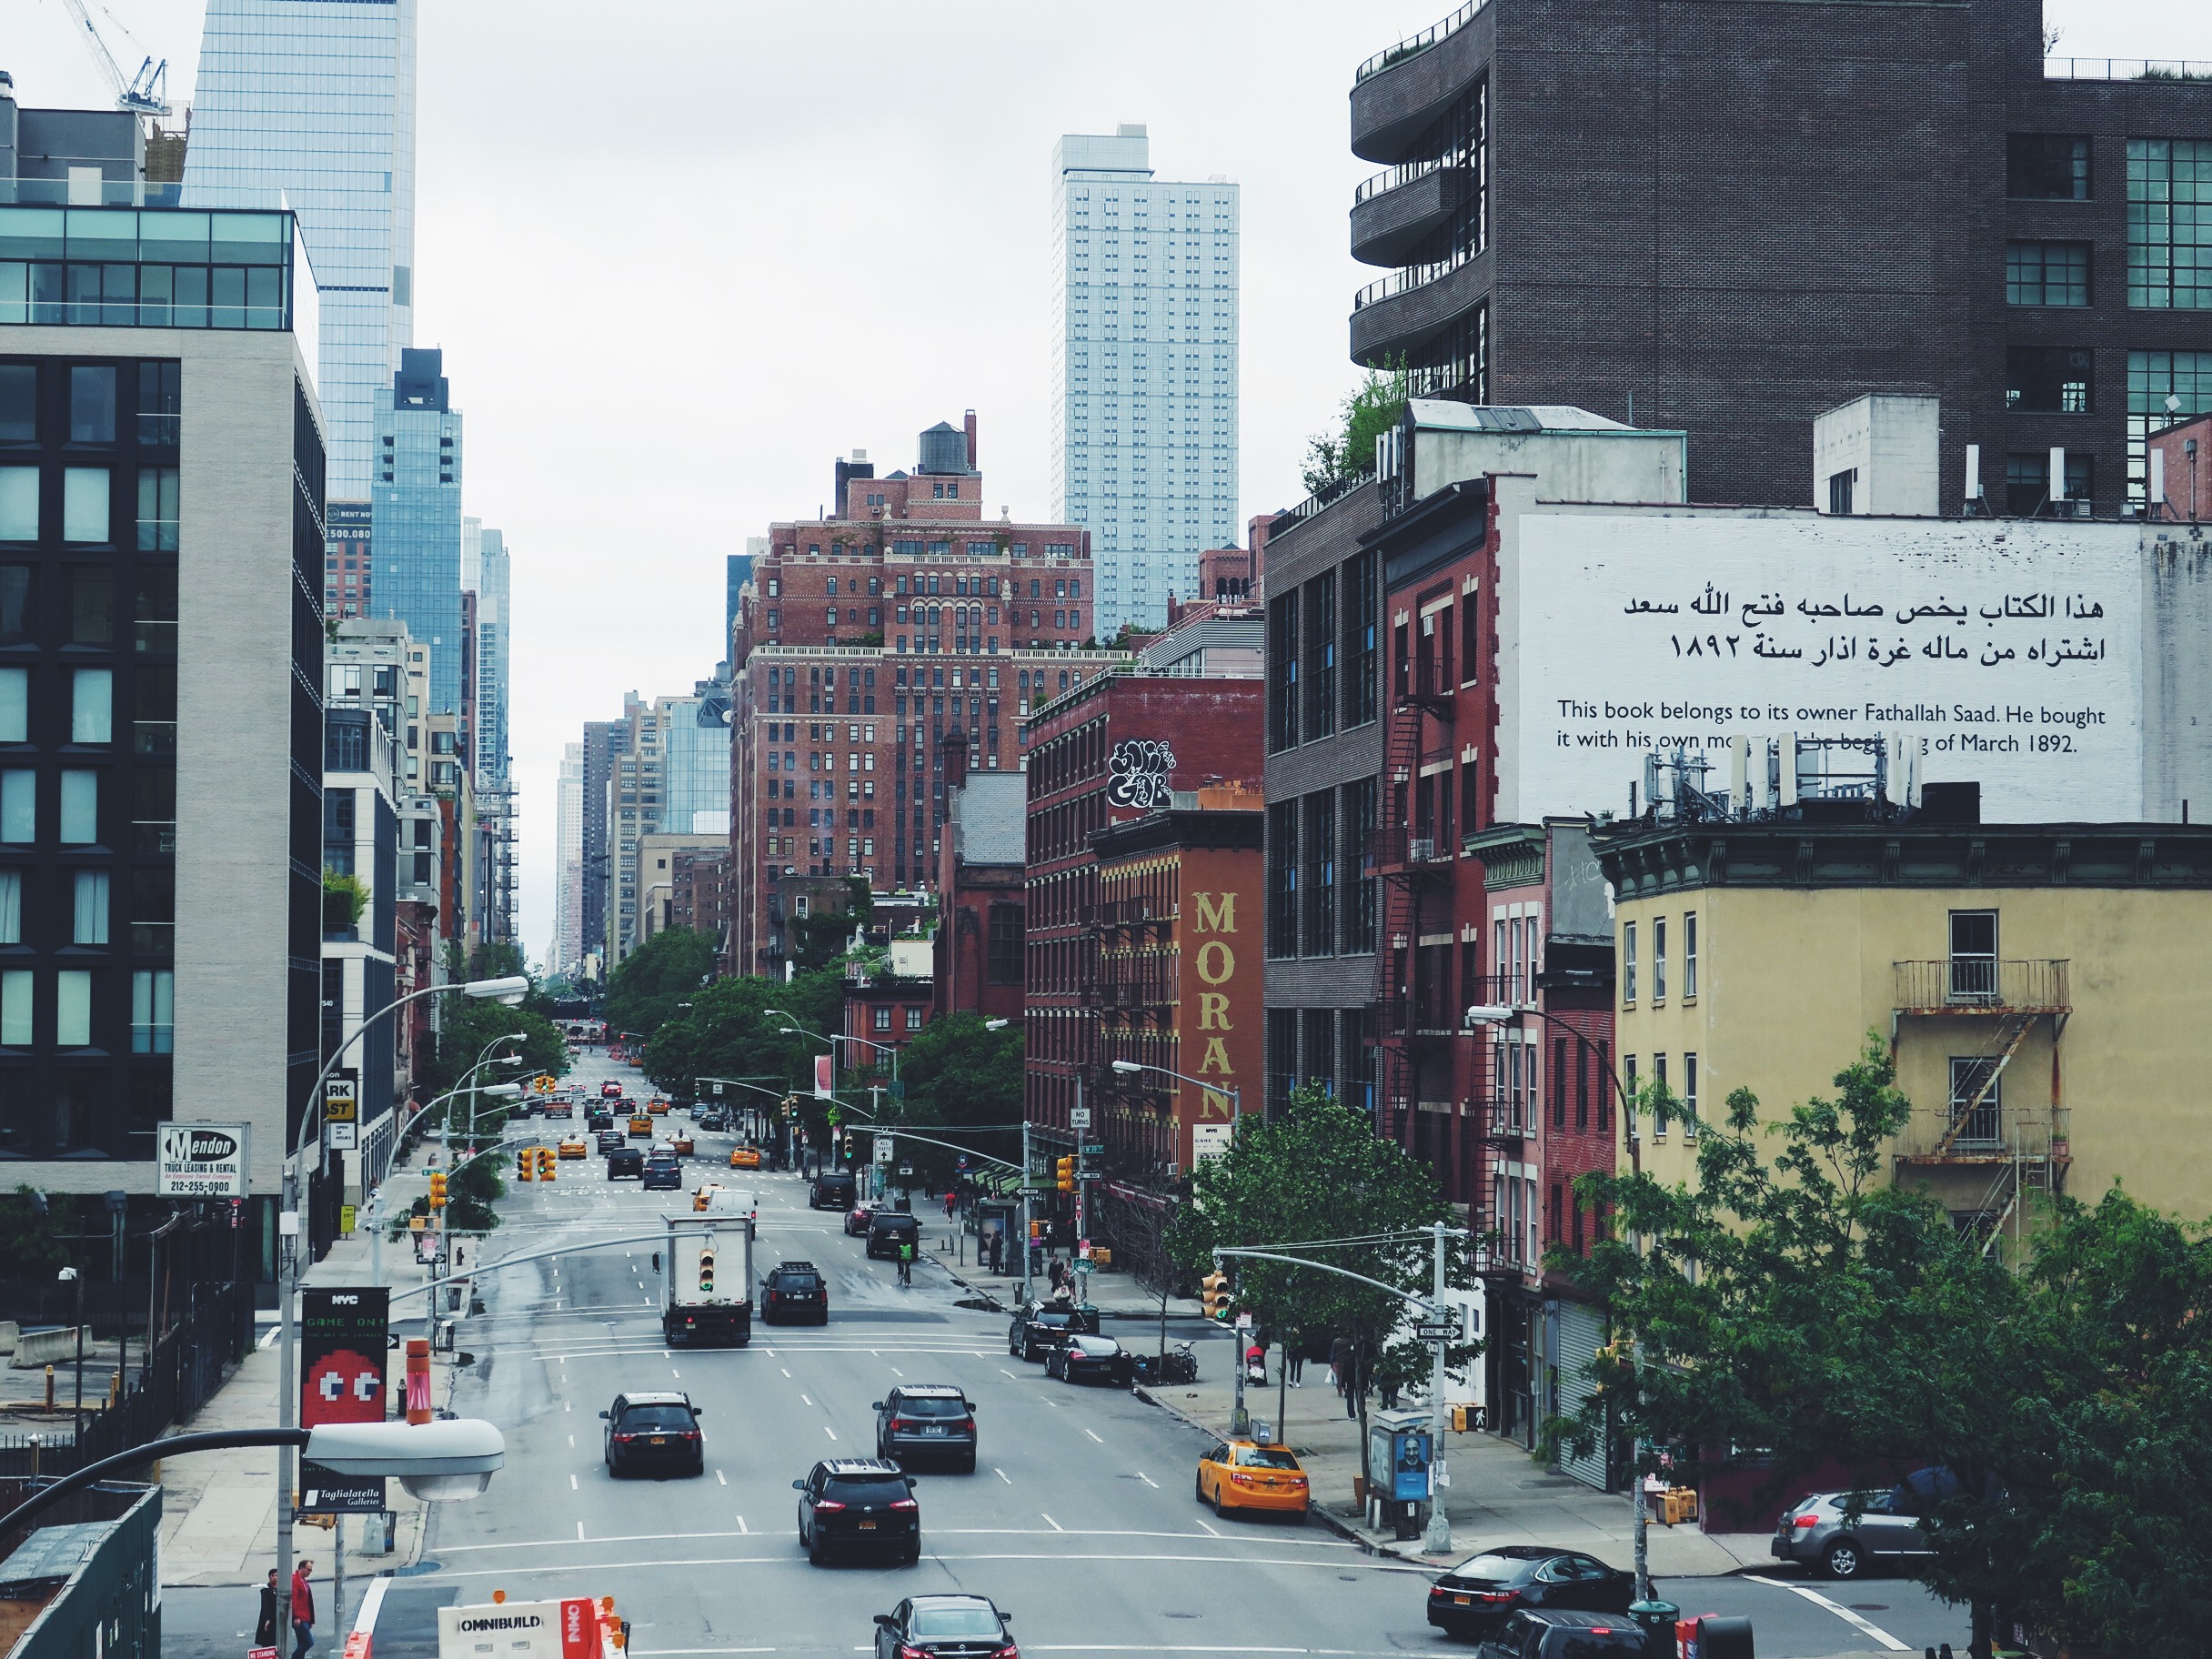 View from the High Line on the Meatpacking District